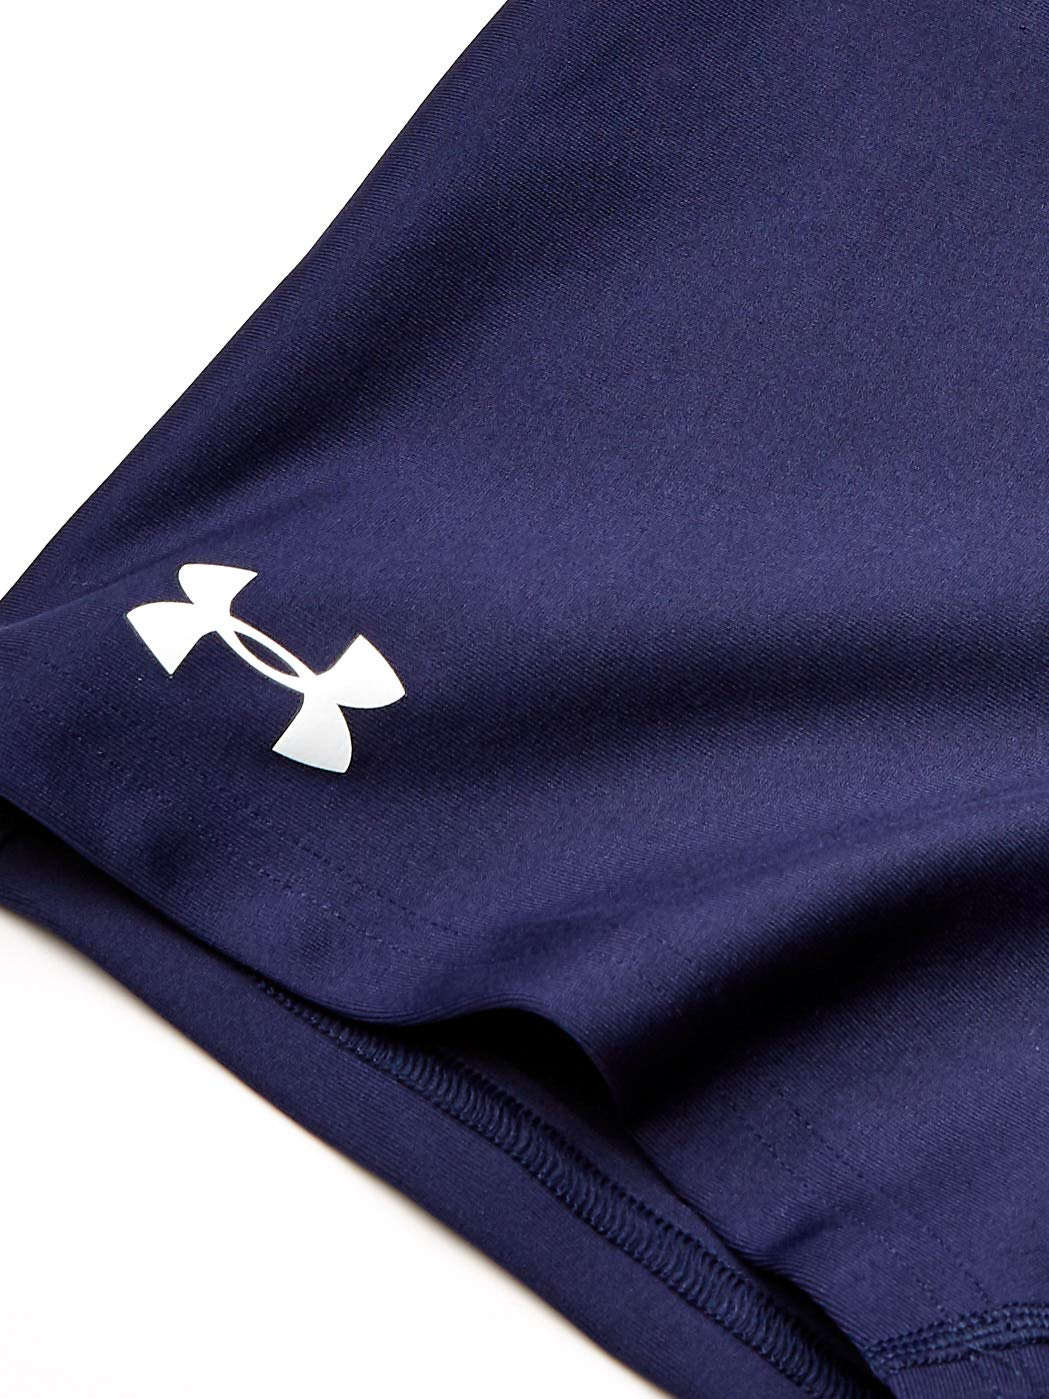 Under Armour Girl On The Court 4 Shorts